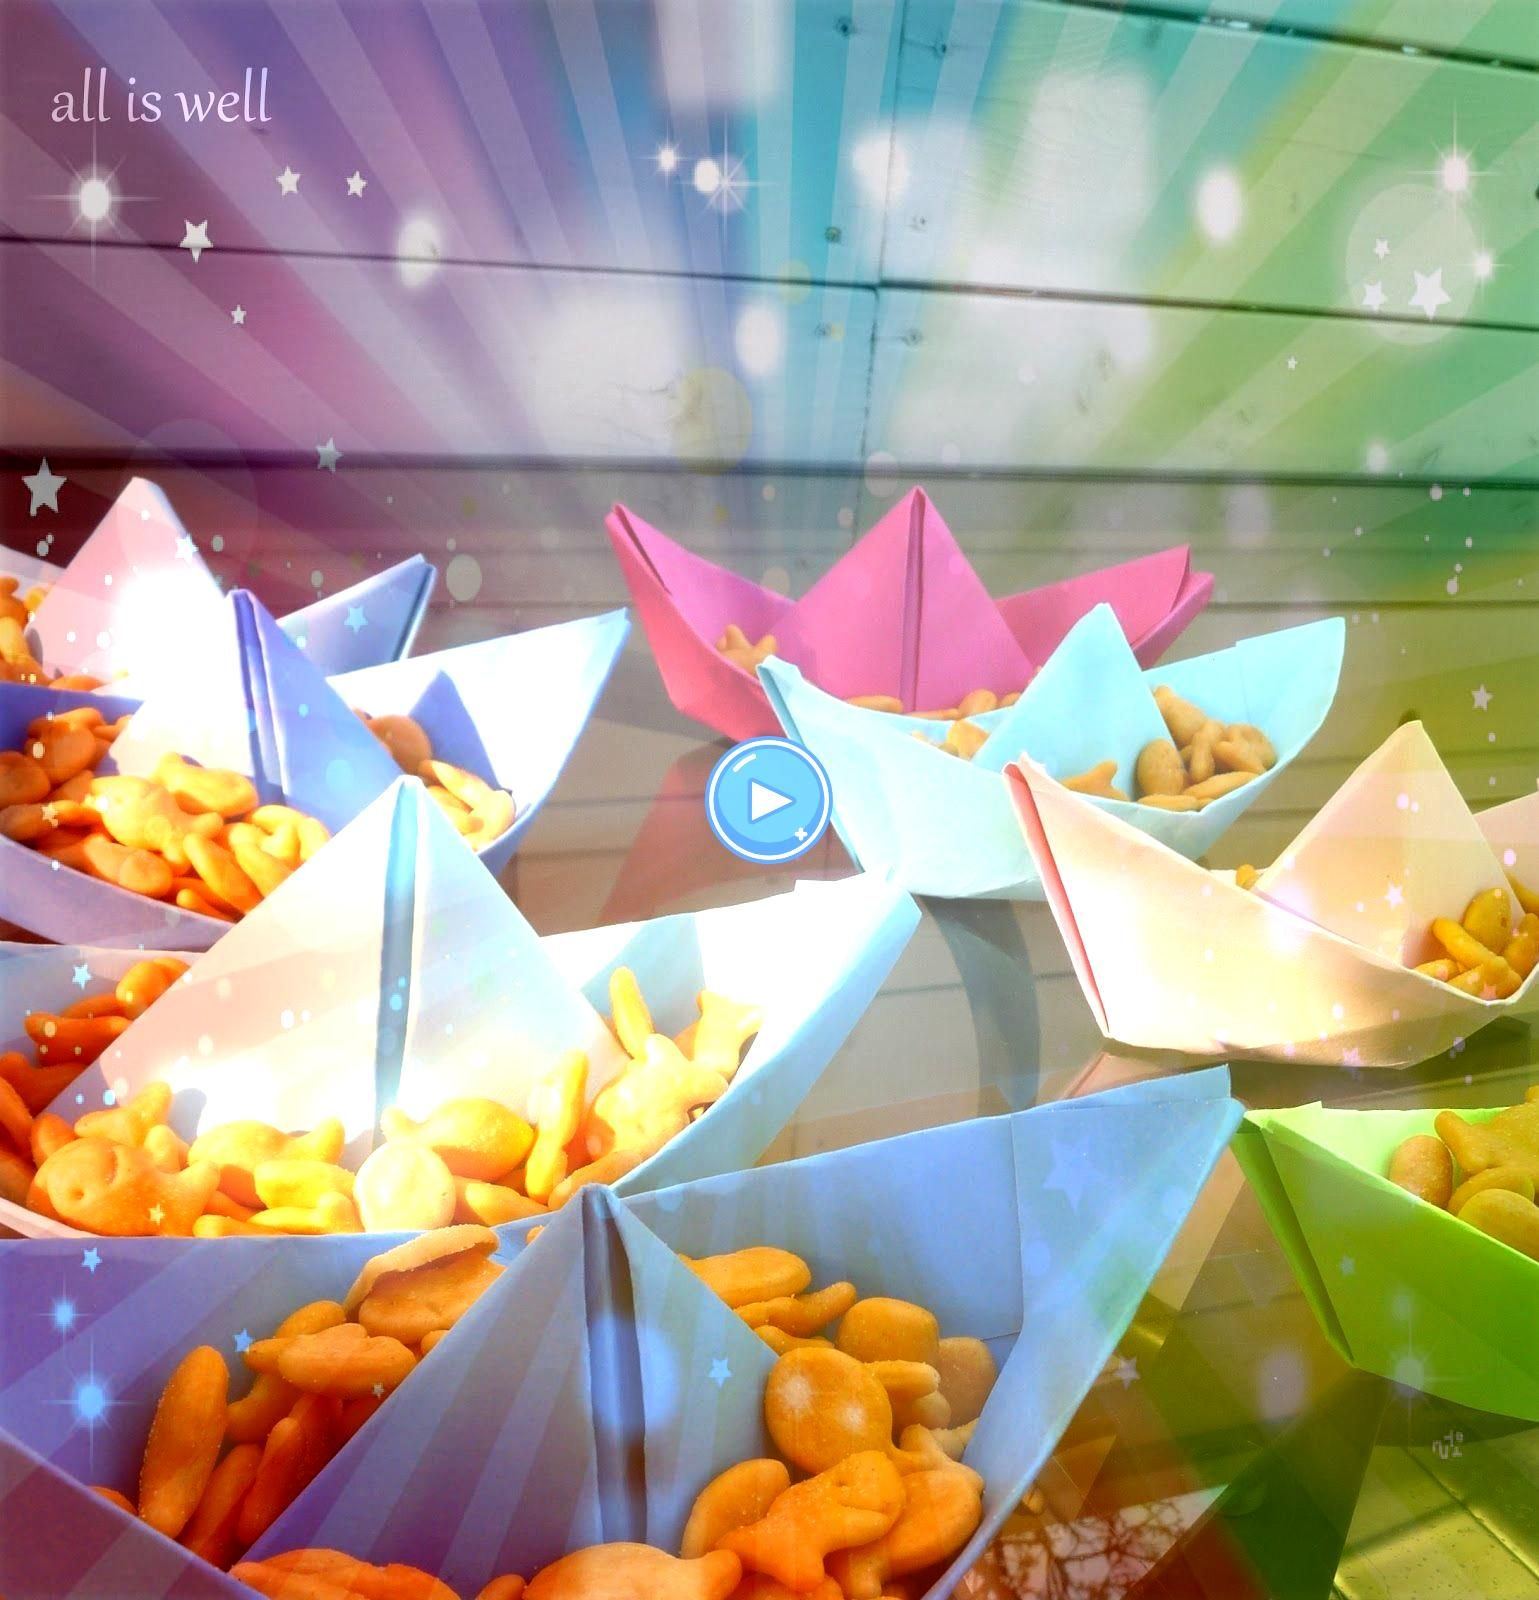 party snack bowls If these float they can be a 2 in one once they finish their snack sail the shipPirate party snack bowls If these float they can be a 2 in one once they...